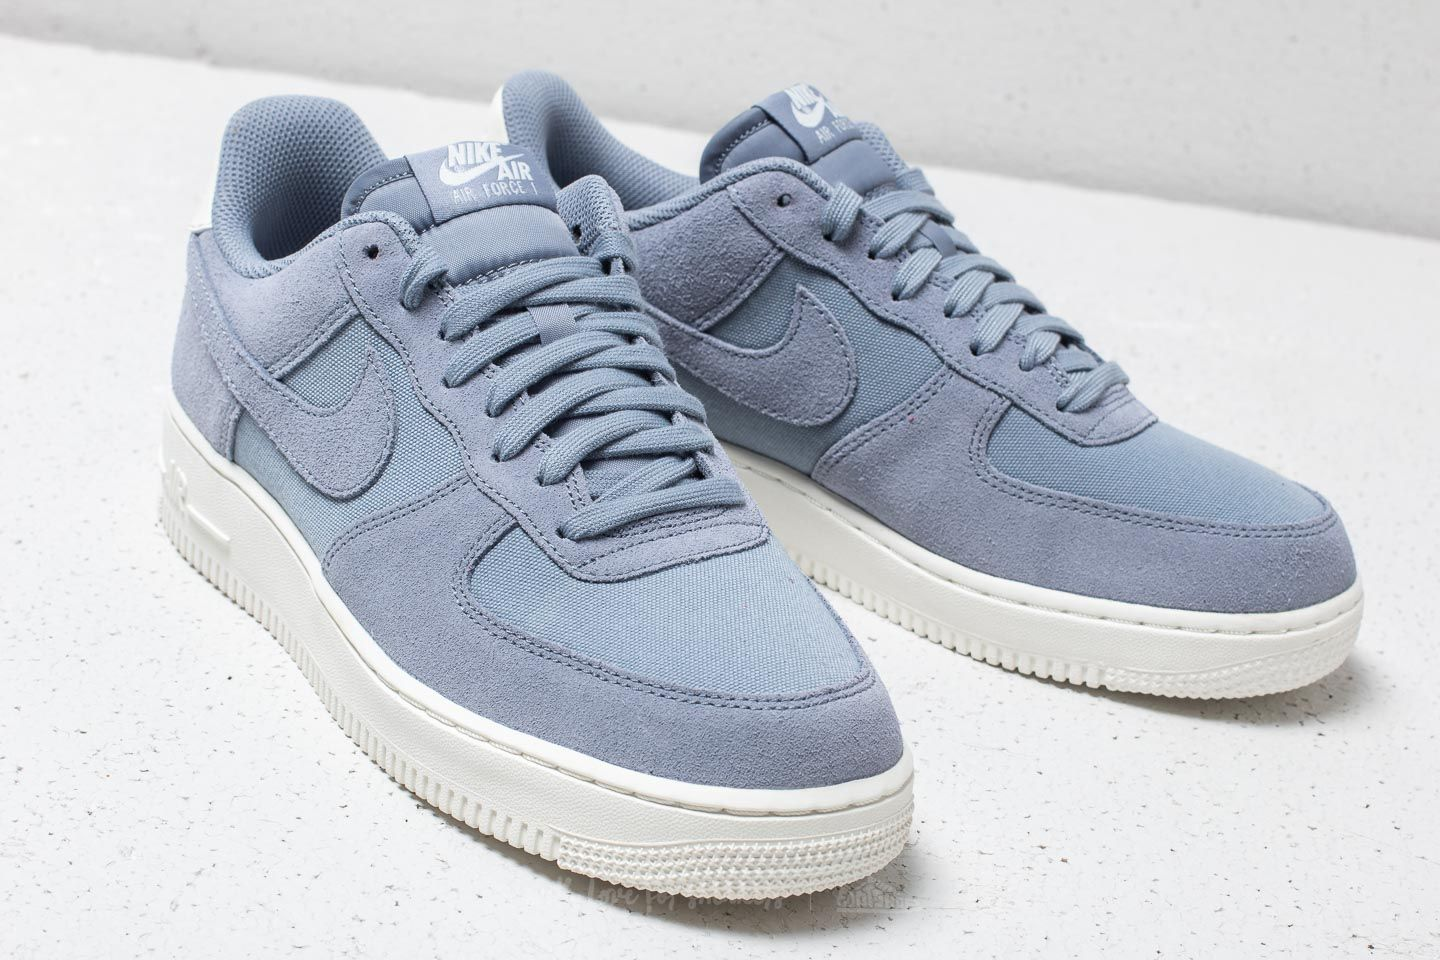 Nike Air Force 1 '07 Suede Ashen Slate Ashen Slate Sail | Footshop